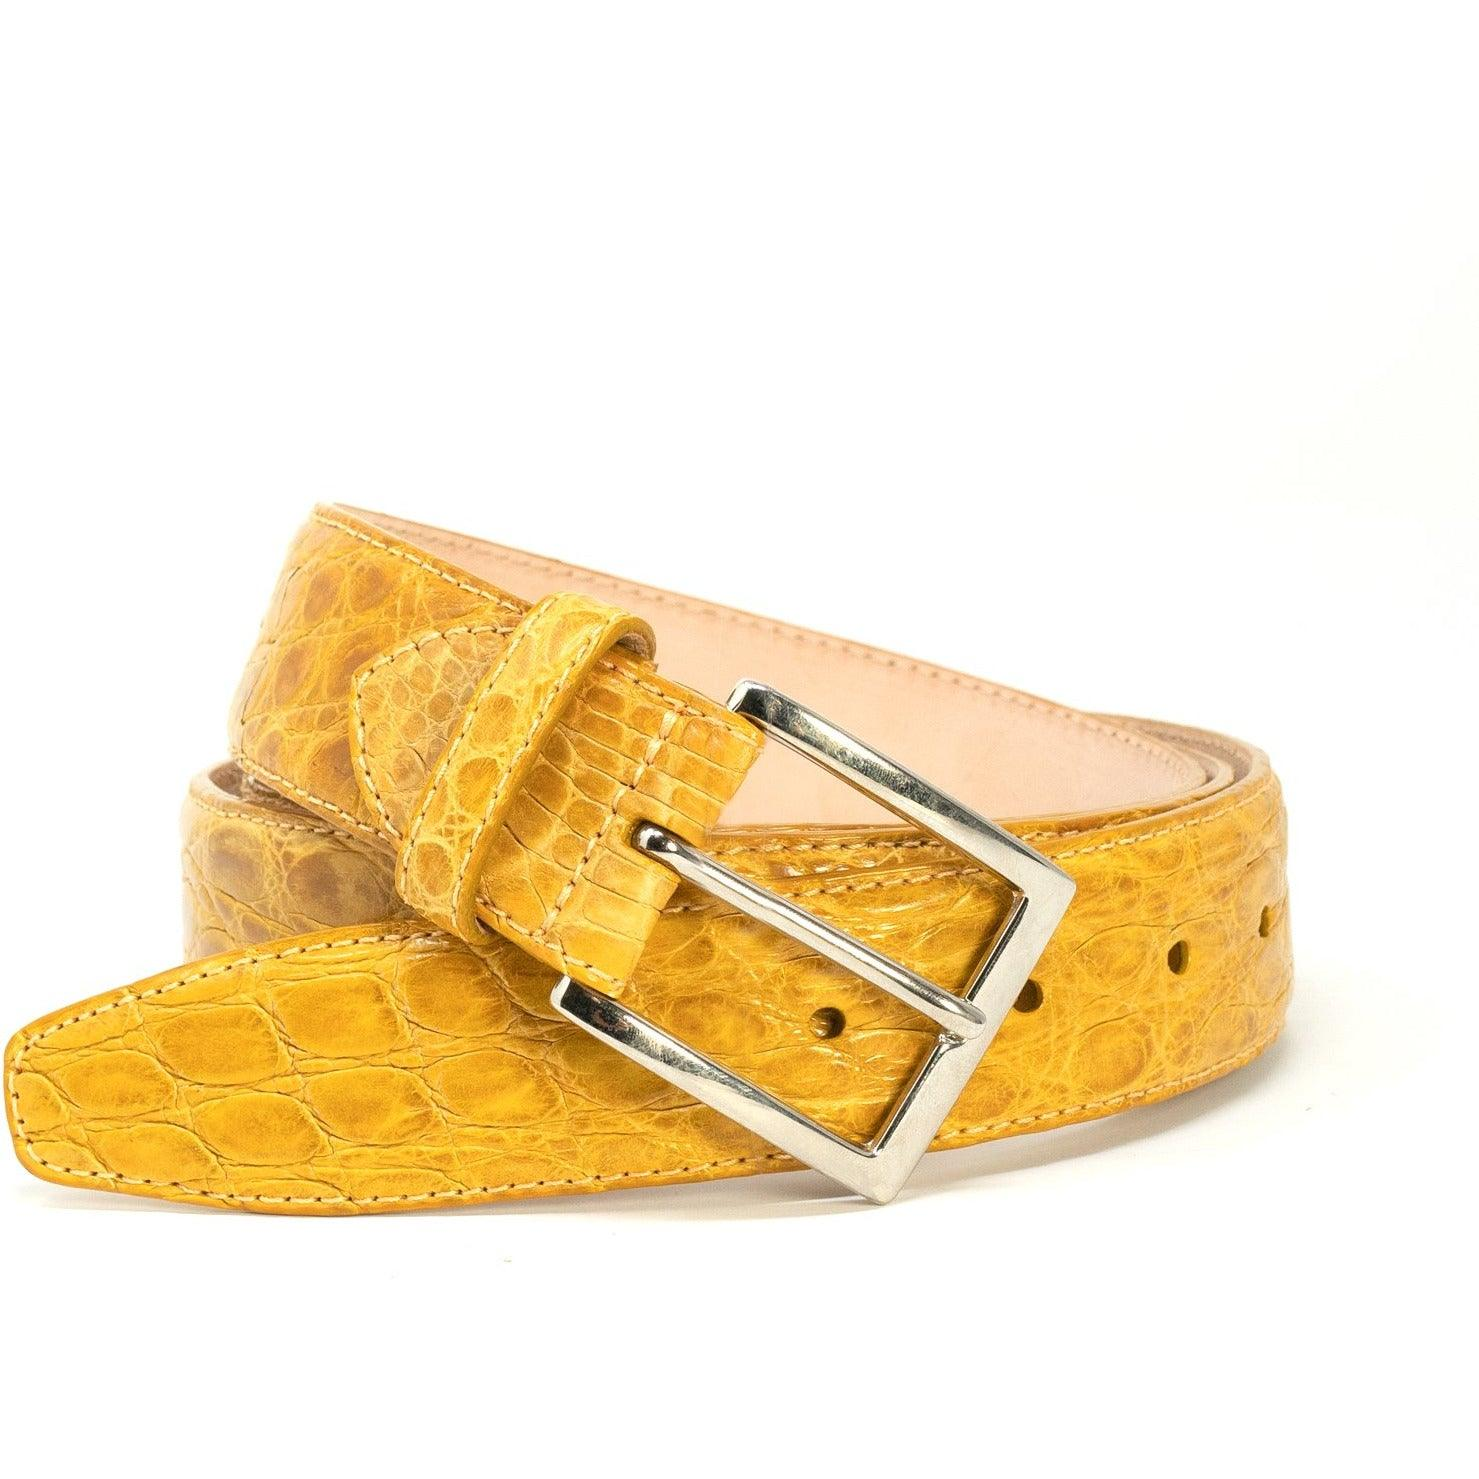 Yellow Crocodile Belt - New Spring Summer 2020 Collection SAN44 107